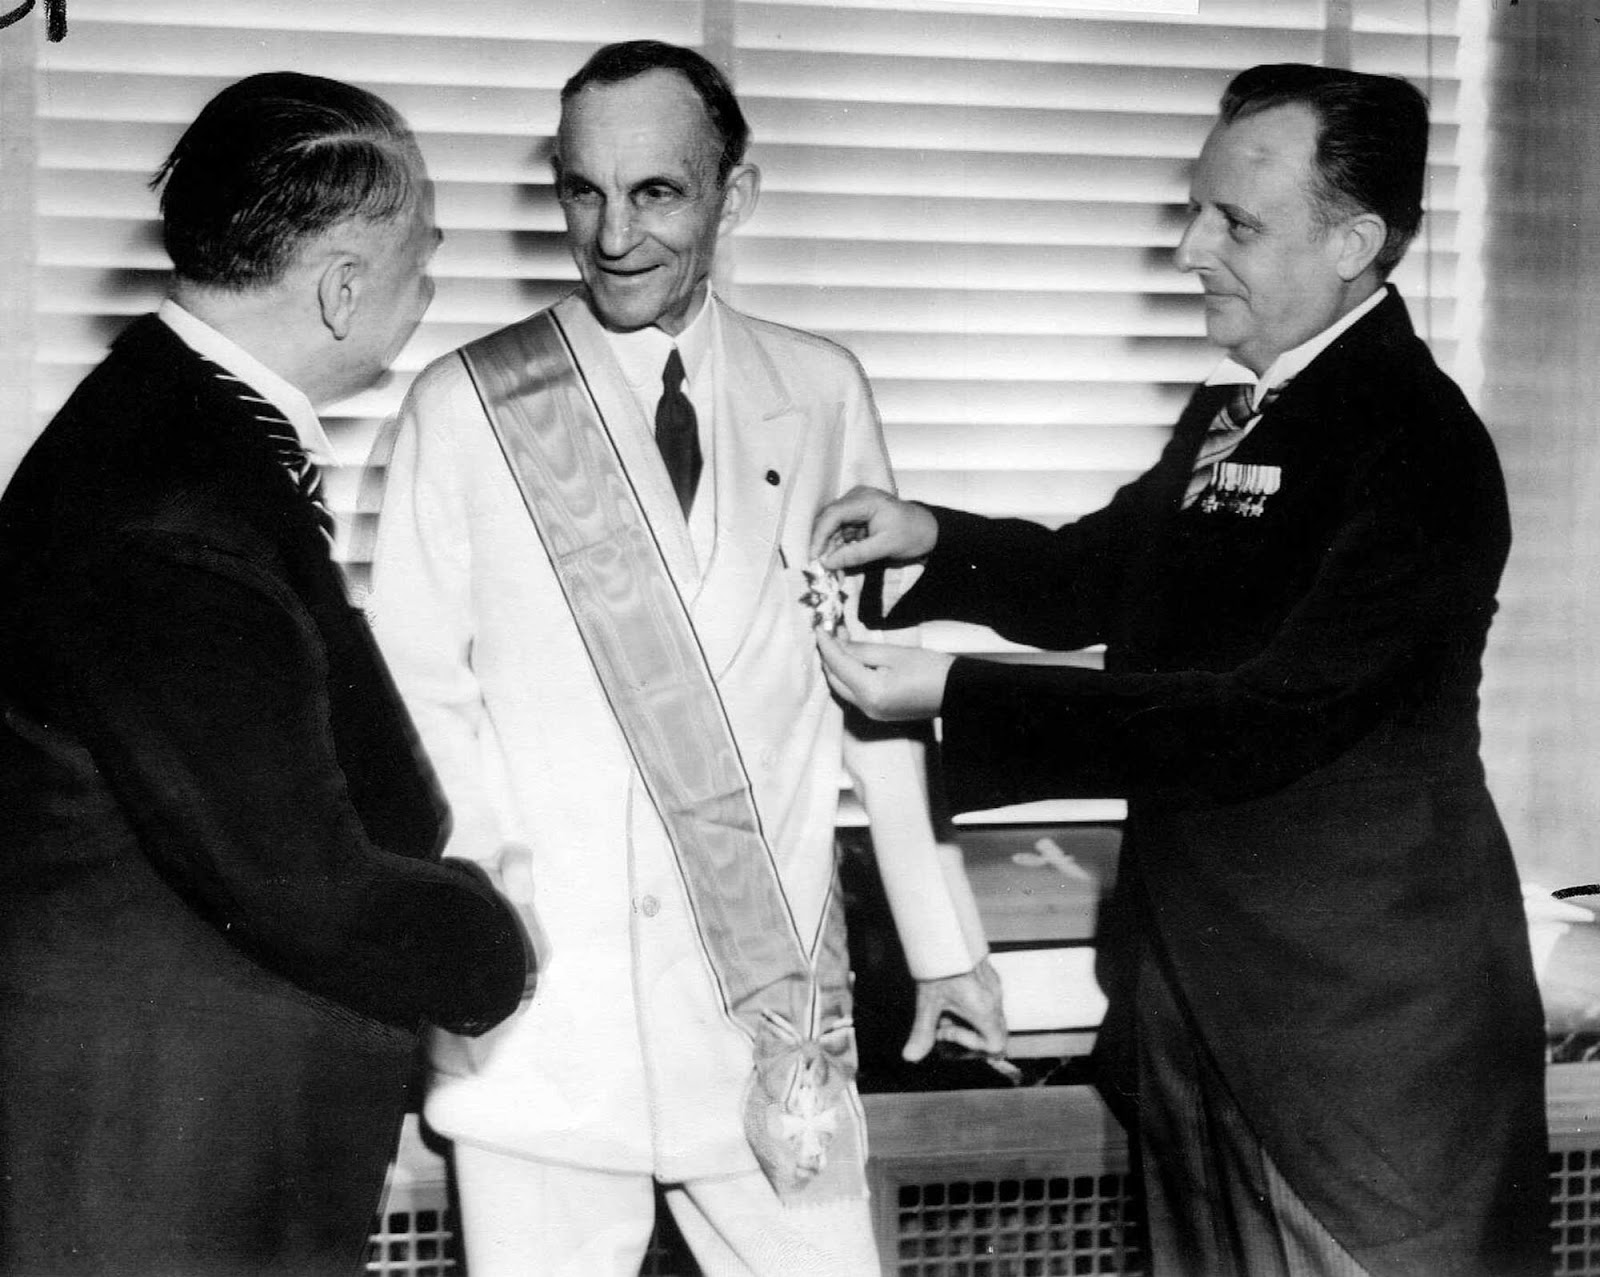 Henry Ford receiving the Grand Cross of the German Eagle from Nazi officials, 1938.